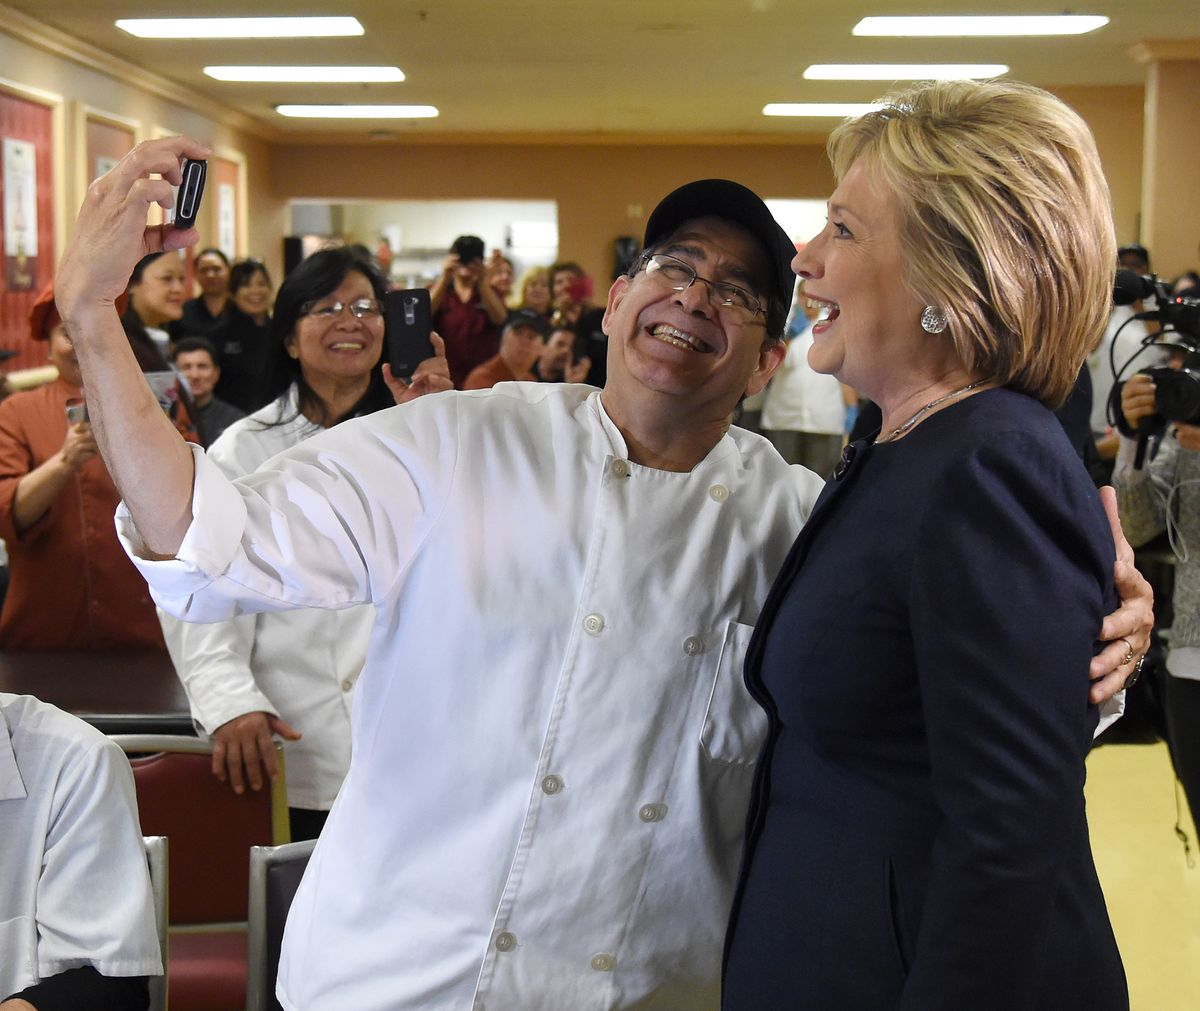 Culinary member poses with Clinton for selfie in Nevada